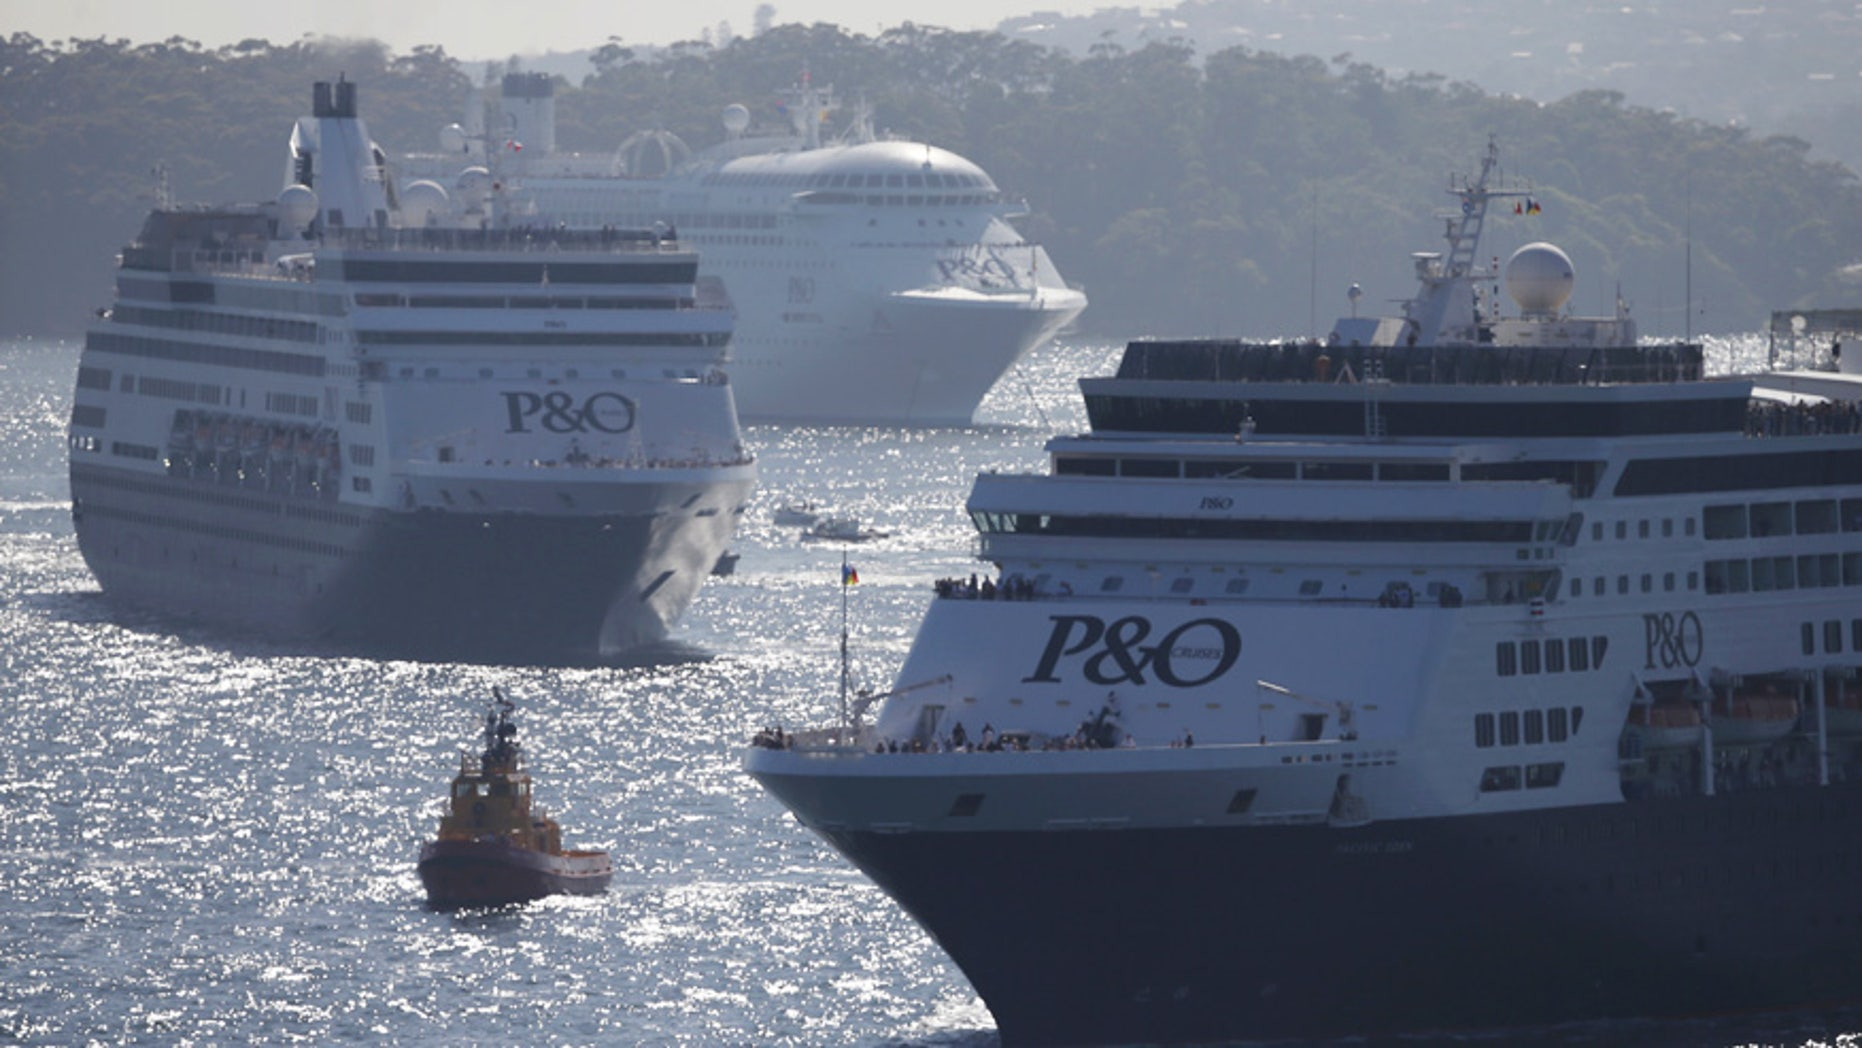 P&O's Pacific Dawn (not pictured) is just looping back to Brisbane, Queensland.